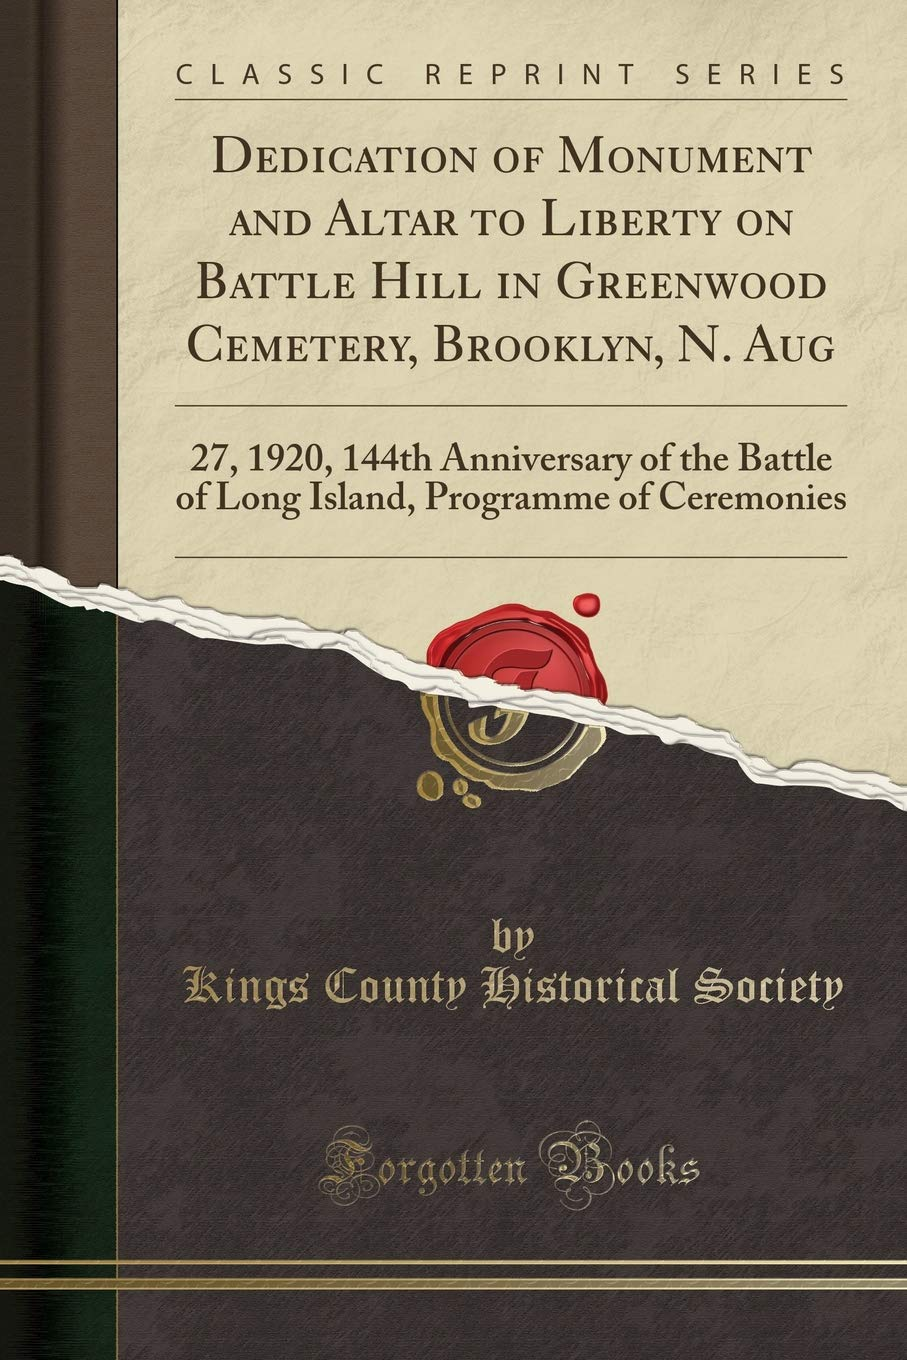 Download Dedication of Monument and Altar to Liberty on Battle Hill in Greenwood Cemetery, Brooklyn, N. Aug: 27, 1920, 144th Anniversary of the Battle of Long Island, Programme of Ceremonies (Classic Reprint) Text fb2 ebook